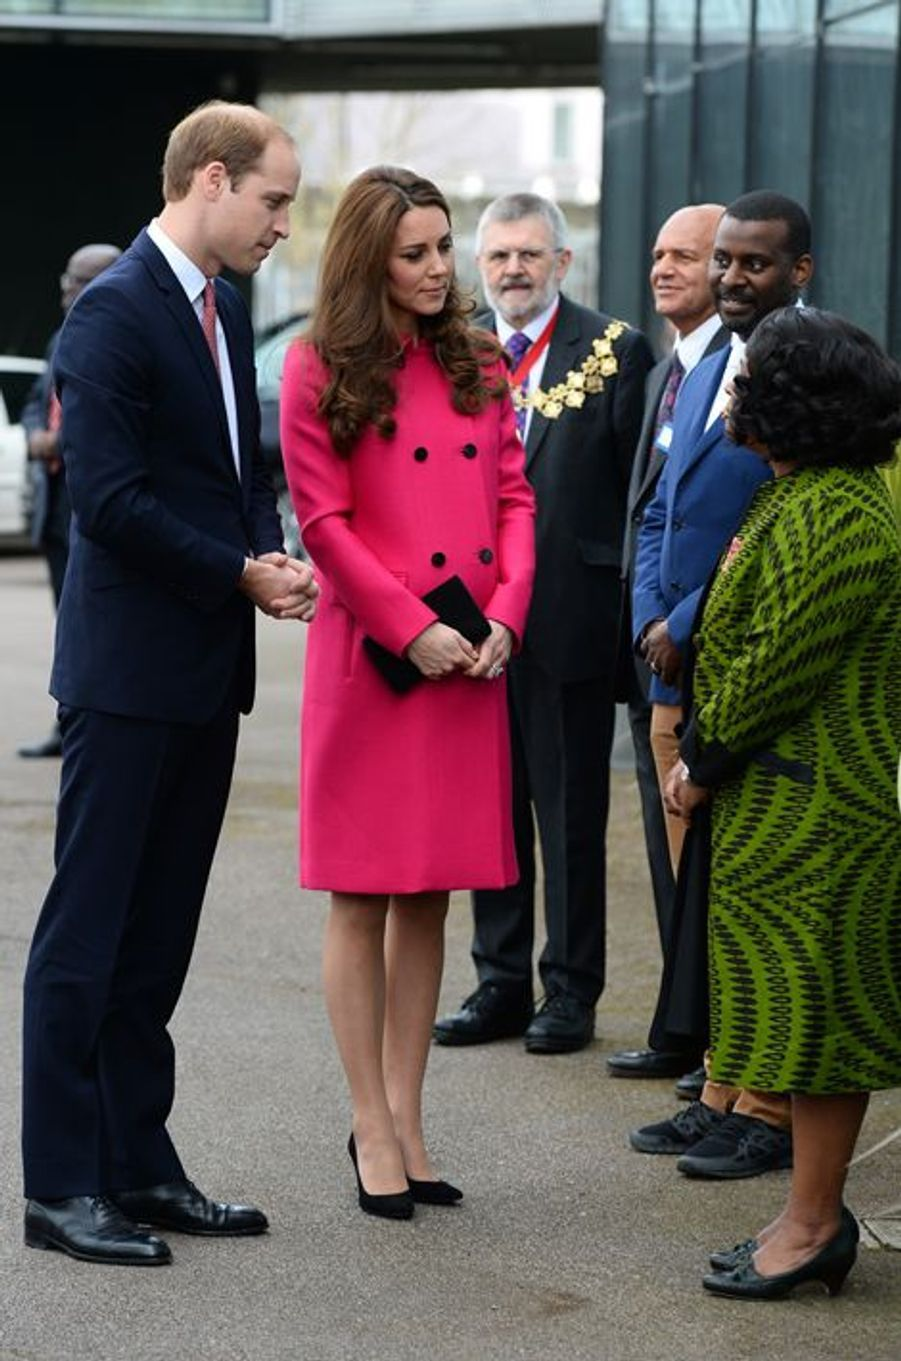 Kate née Middleton et le prince William, avec Doreen Lawrence, au Stephen Lawrence Centre à Londres, le 27 mars 2015